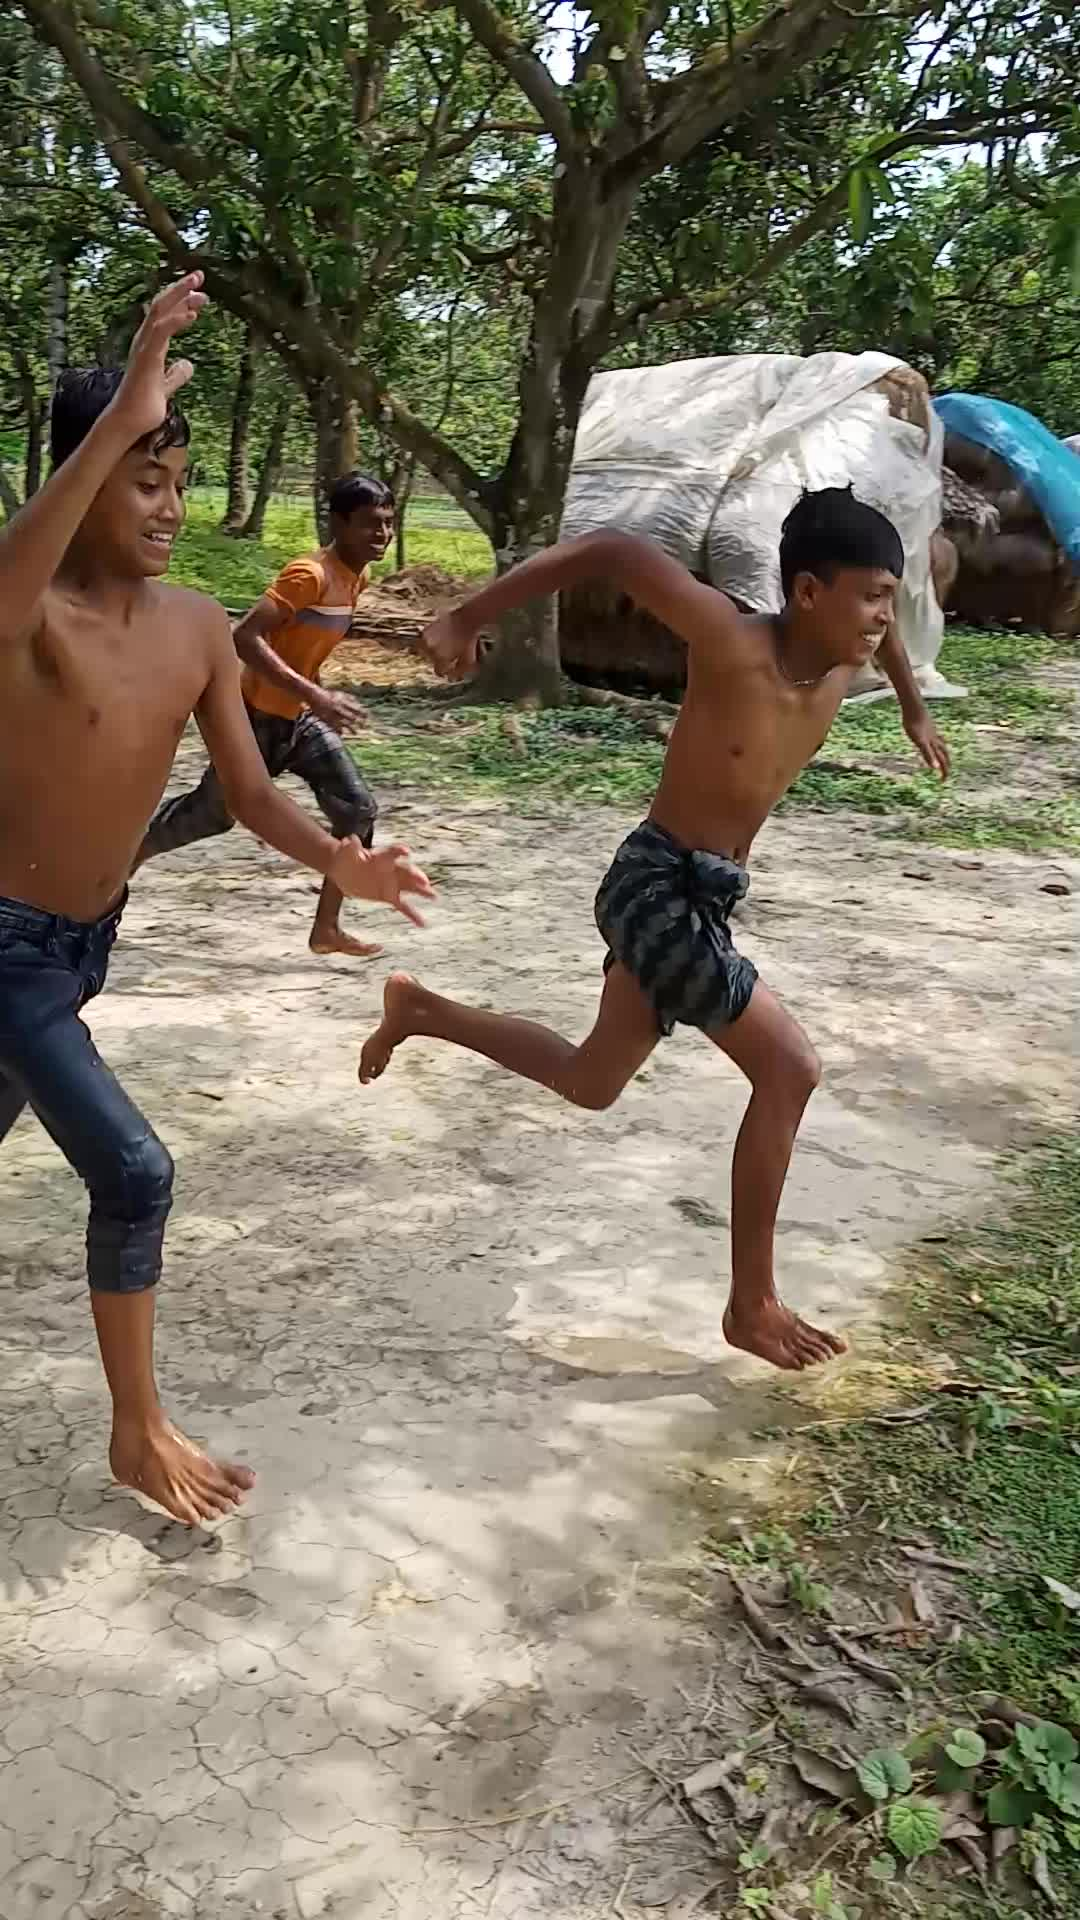 Good afternoon friends, friends, we can see the video of the funny video of some boys taking a bath inside a village in Satkhira district.  Friends, we can see three boys from the village jumping into the pond to take a bath from inside the green trees.  Friends, the boys of such villages take a bath by jumping into the pond with constant joy.  Friends, it is very important for people to take a bath because taking a bath makes the human body cold. Therefore, it is necessary to take a bath regularly for a healthy human body.  Fifteen bathing scenes that are not seen anywhere else in the city. The people of our country and abroad are fascinated when they see the scene where the boys of our village take a bath.